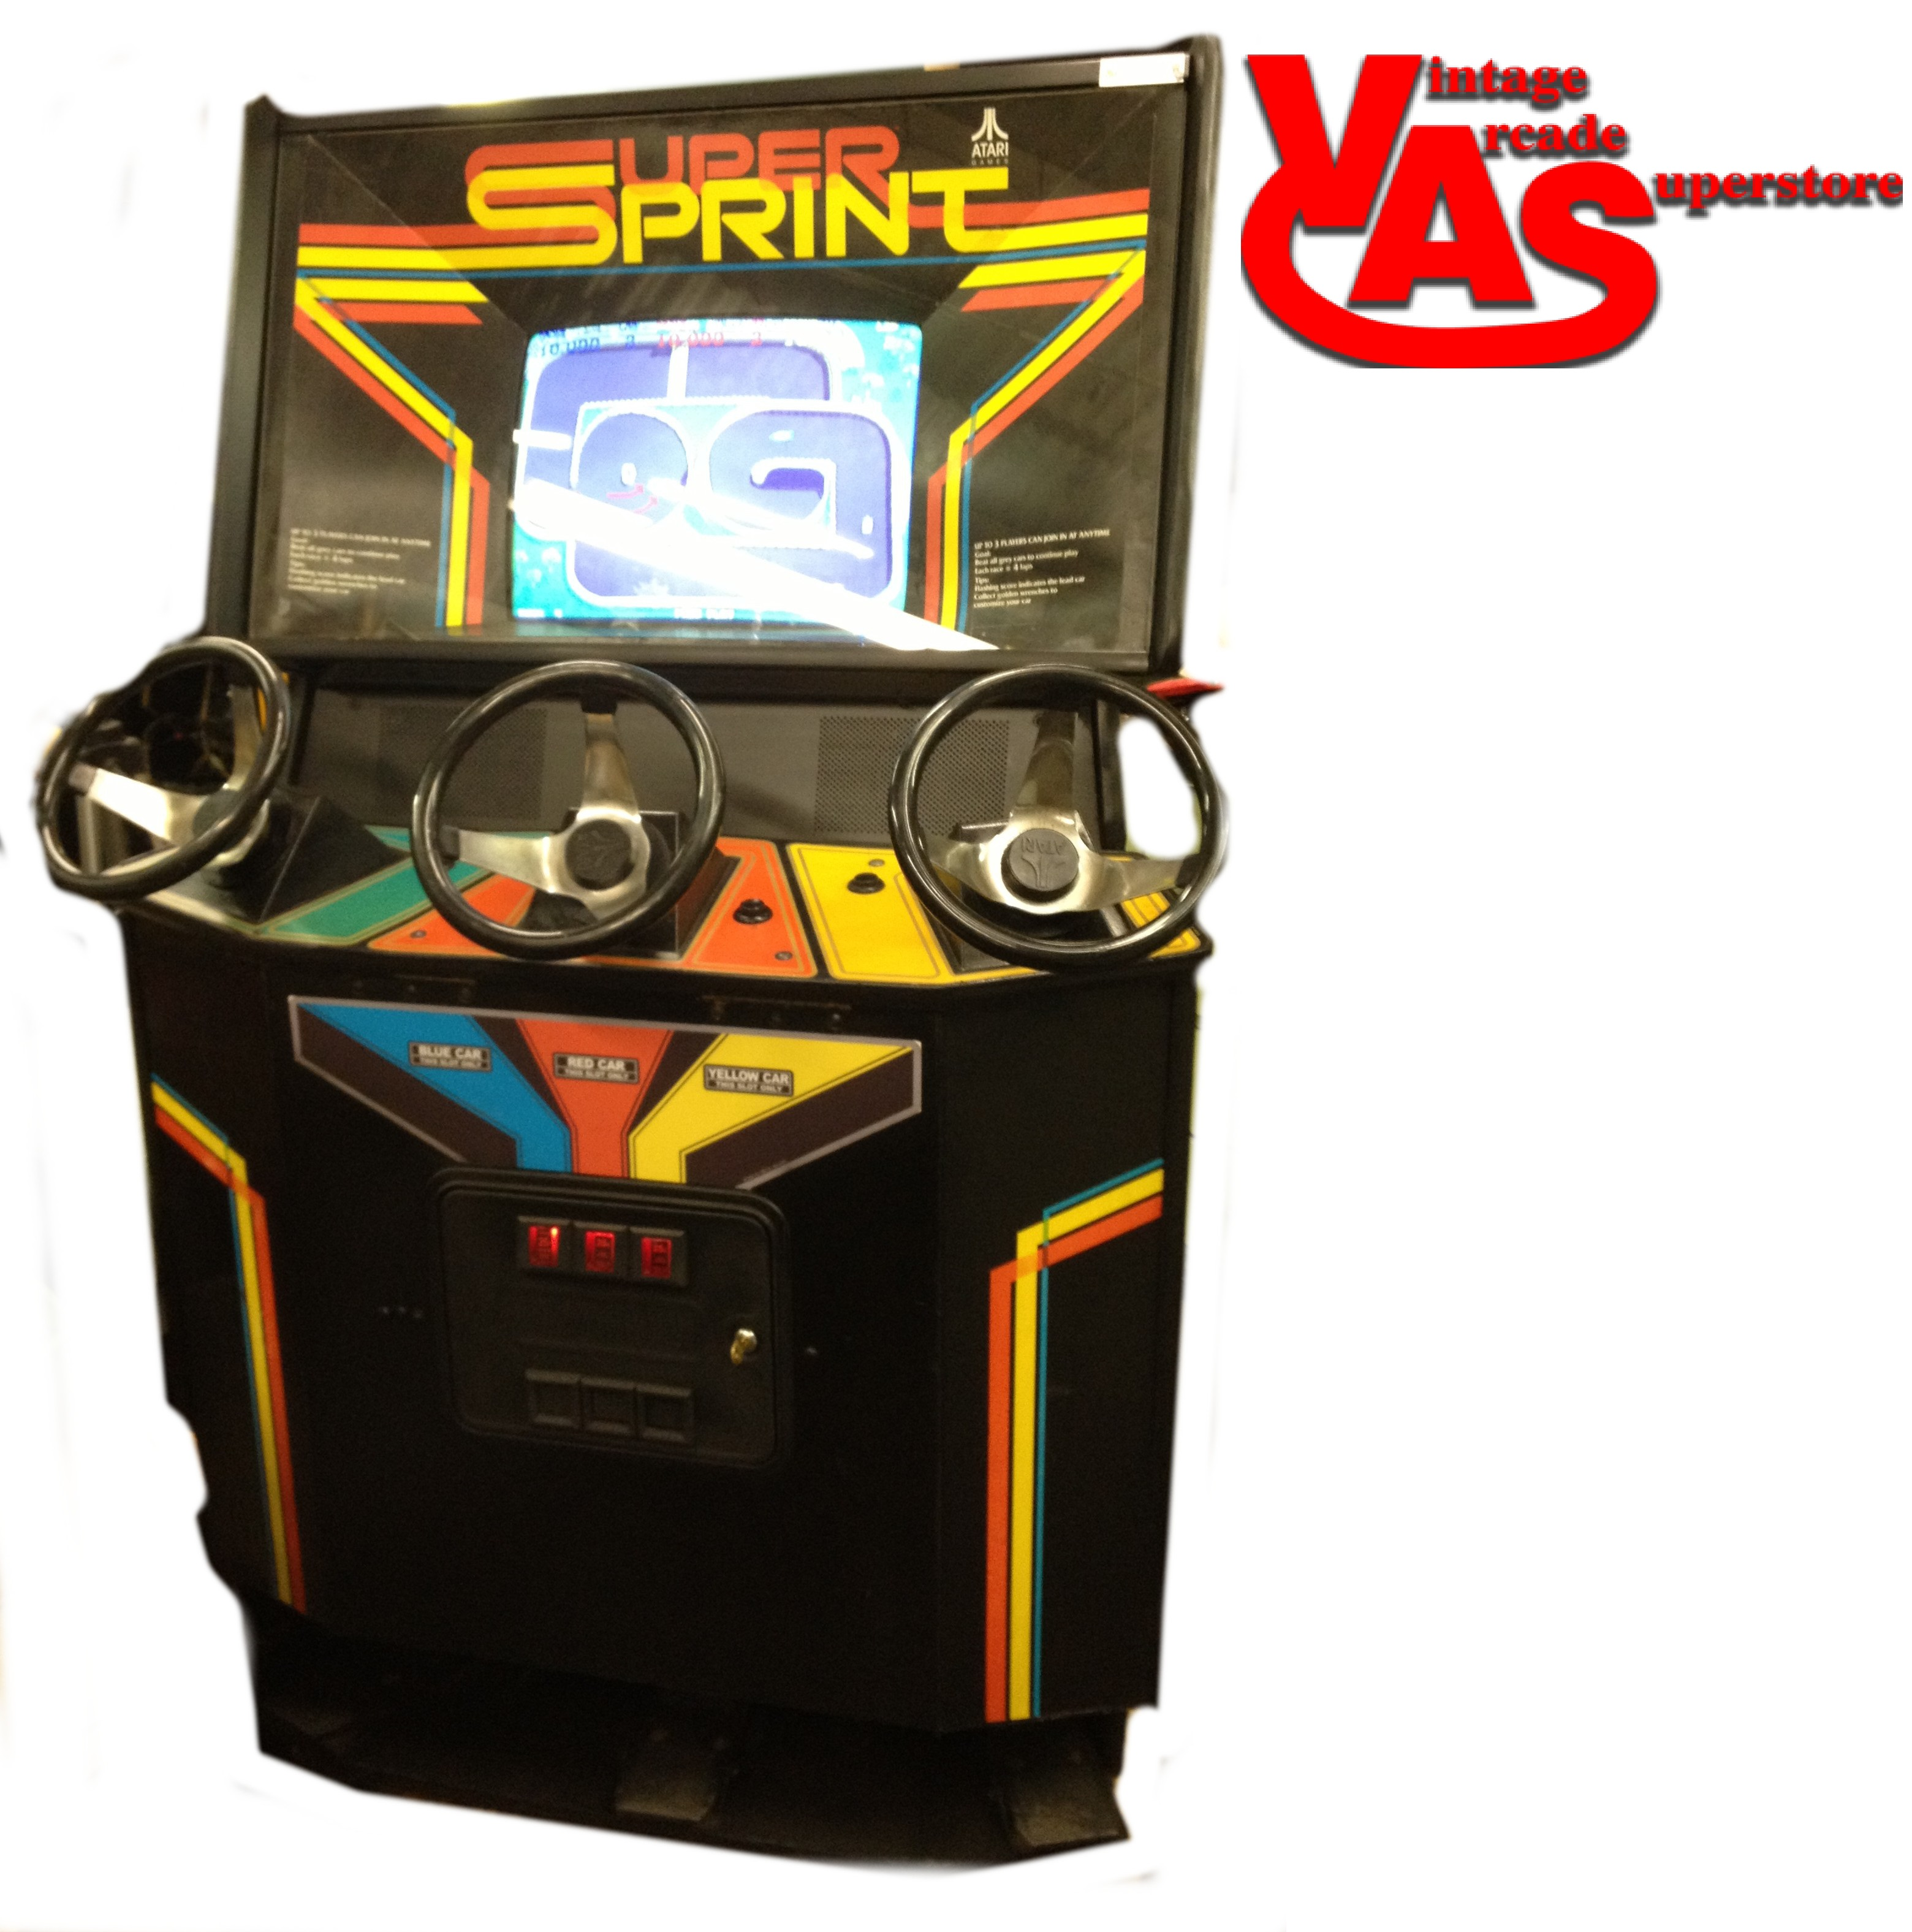 Sprint Services - Games